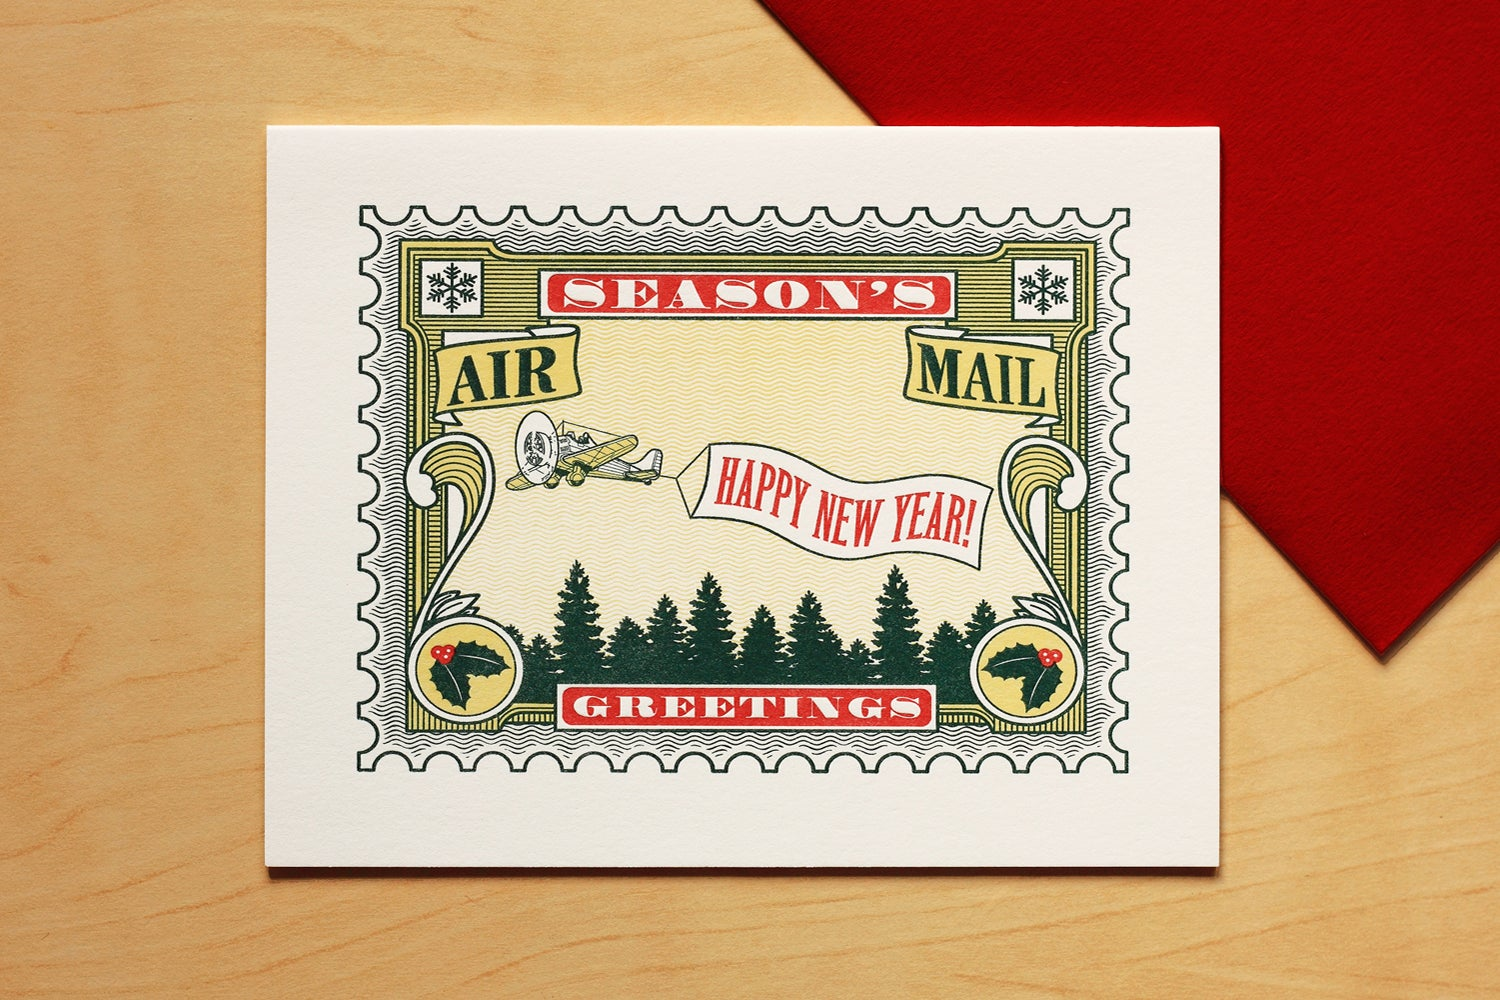 Image of SEASON'S GREETINGS AIR MAIL CARD